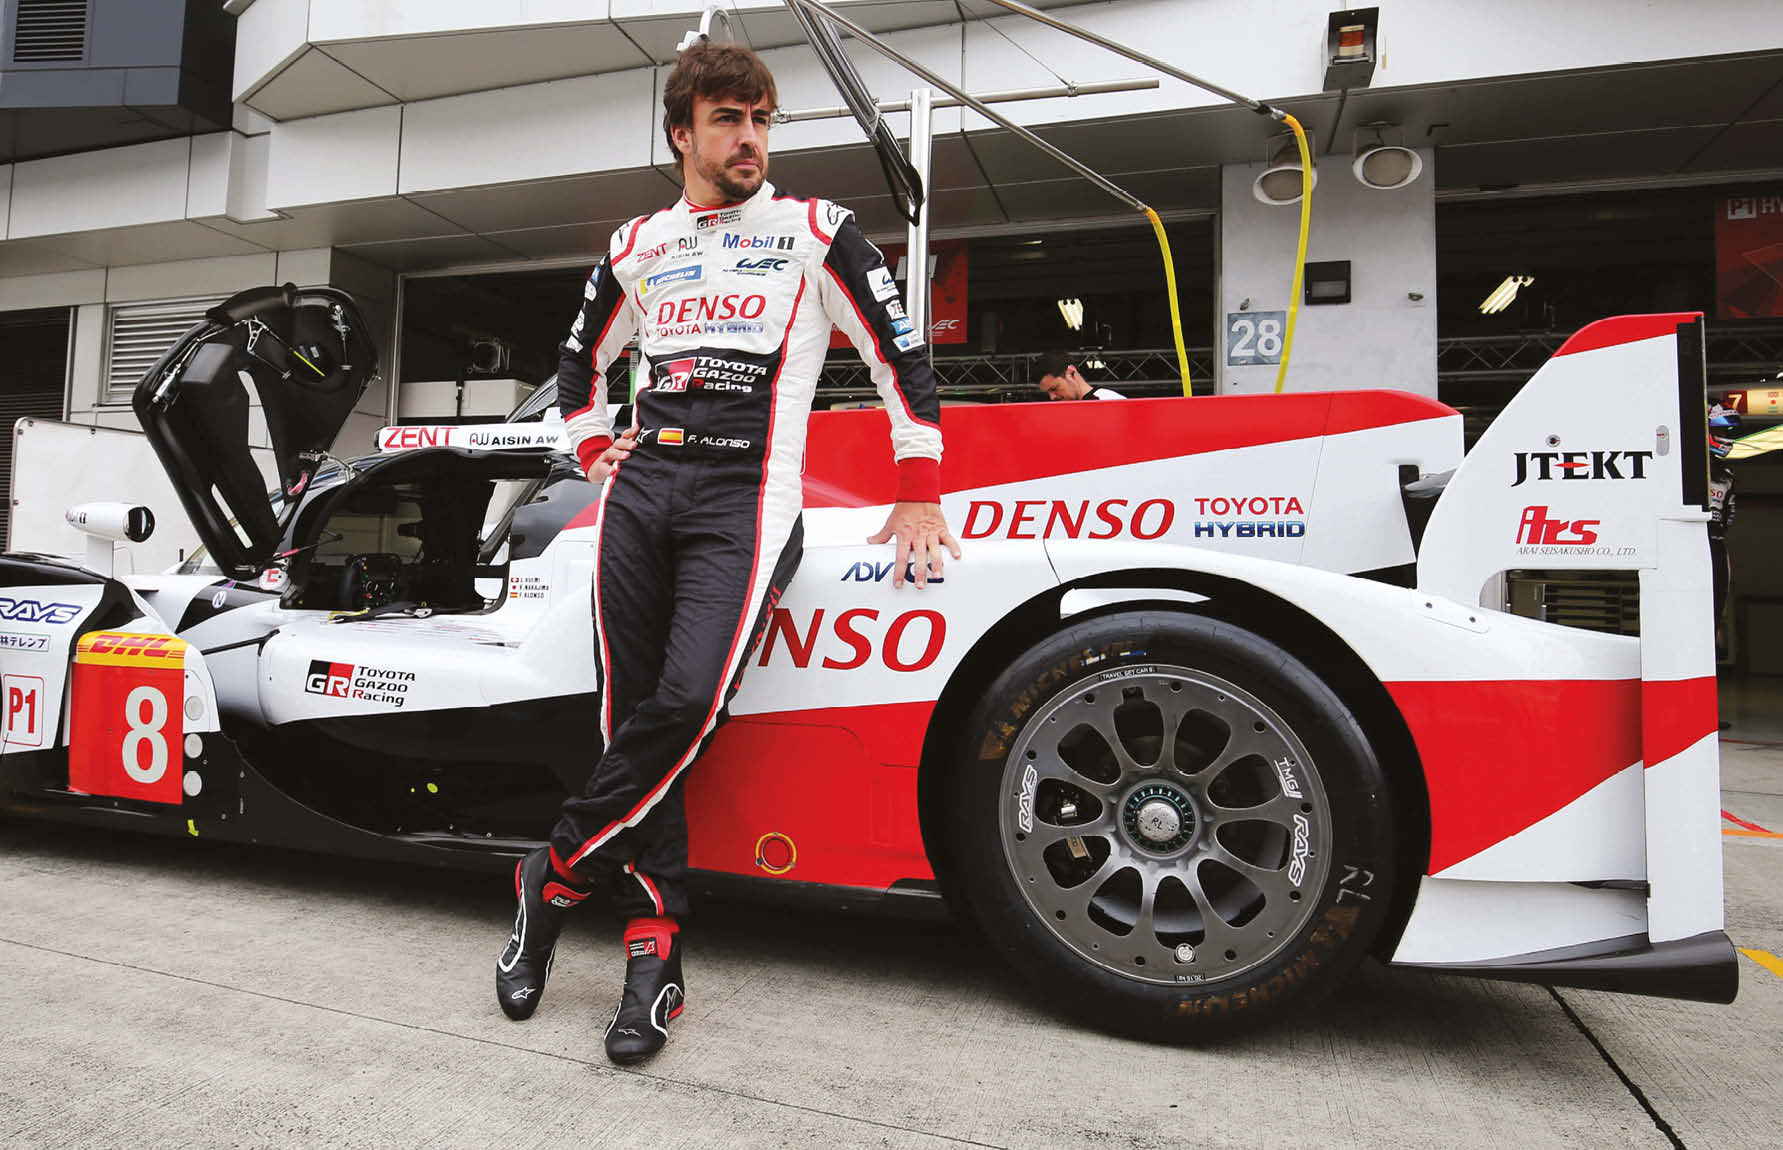 Right now it's Toyota and Le Mans. But could it soon be Toyota and Dakar for Alonso?